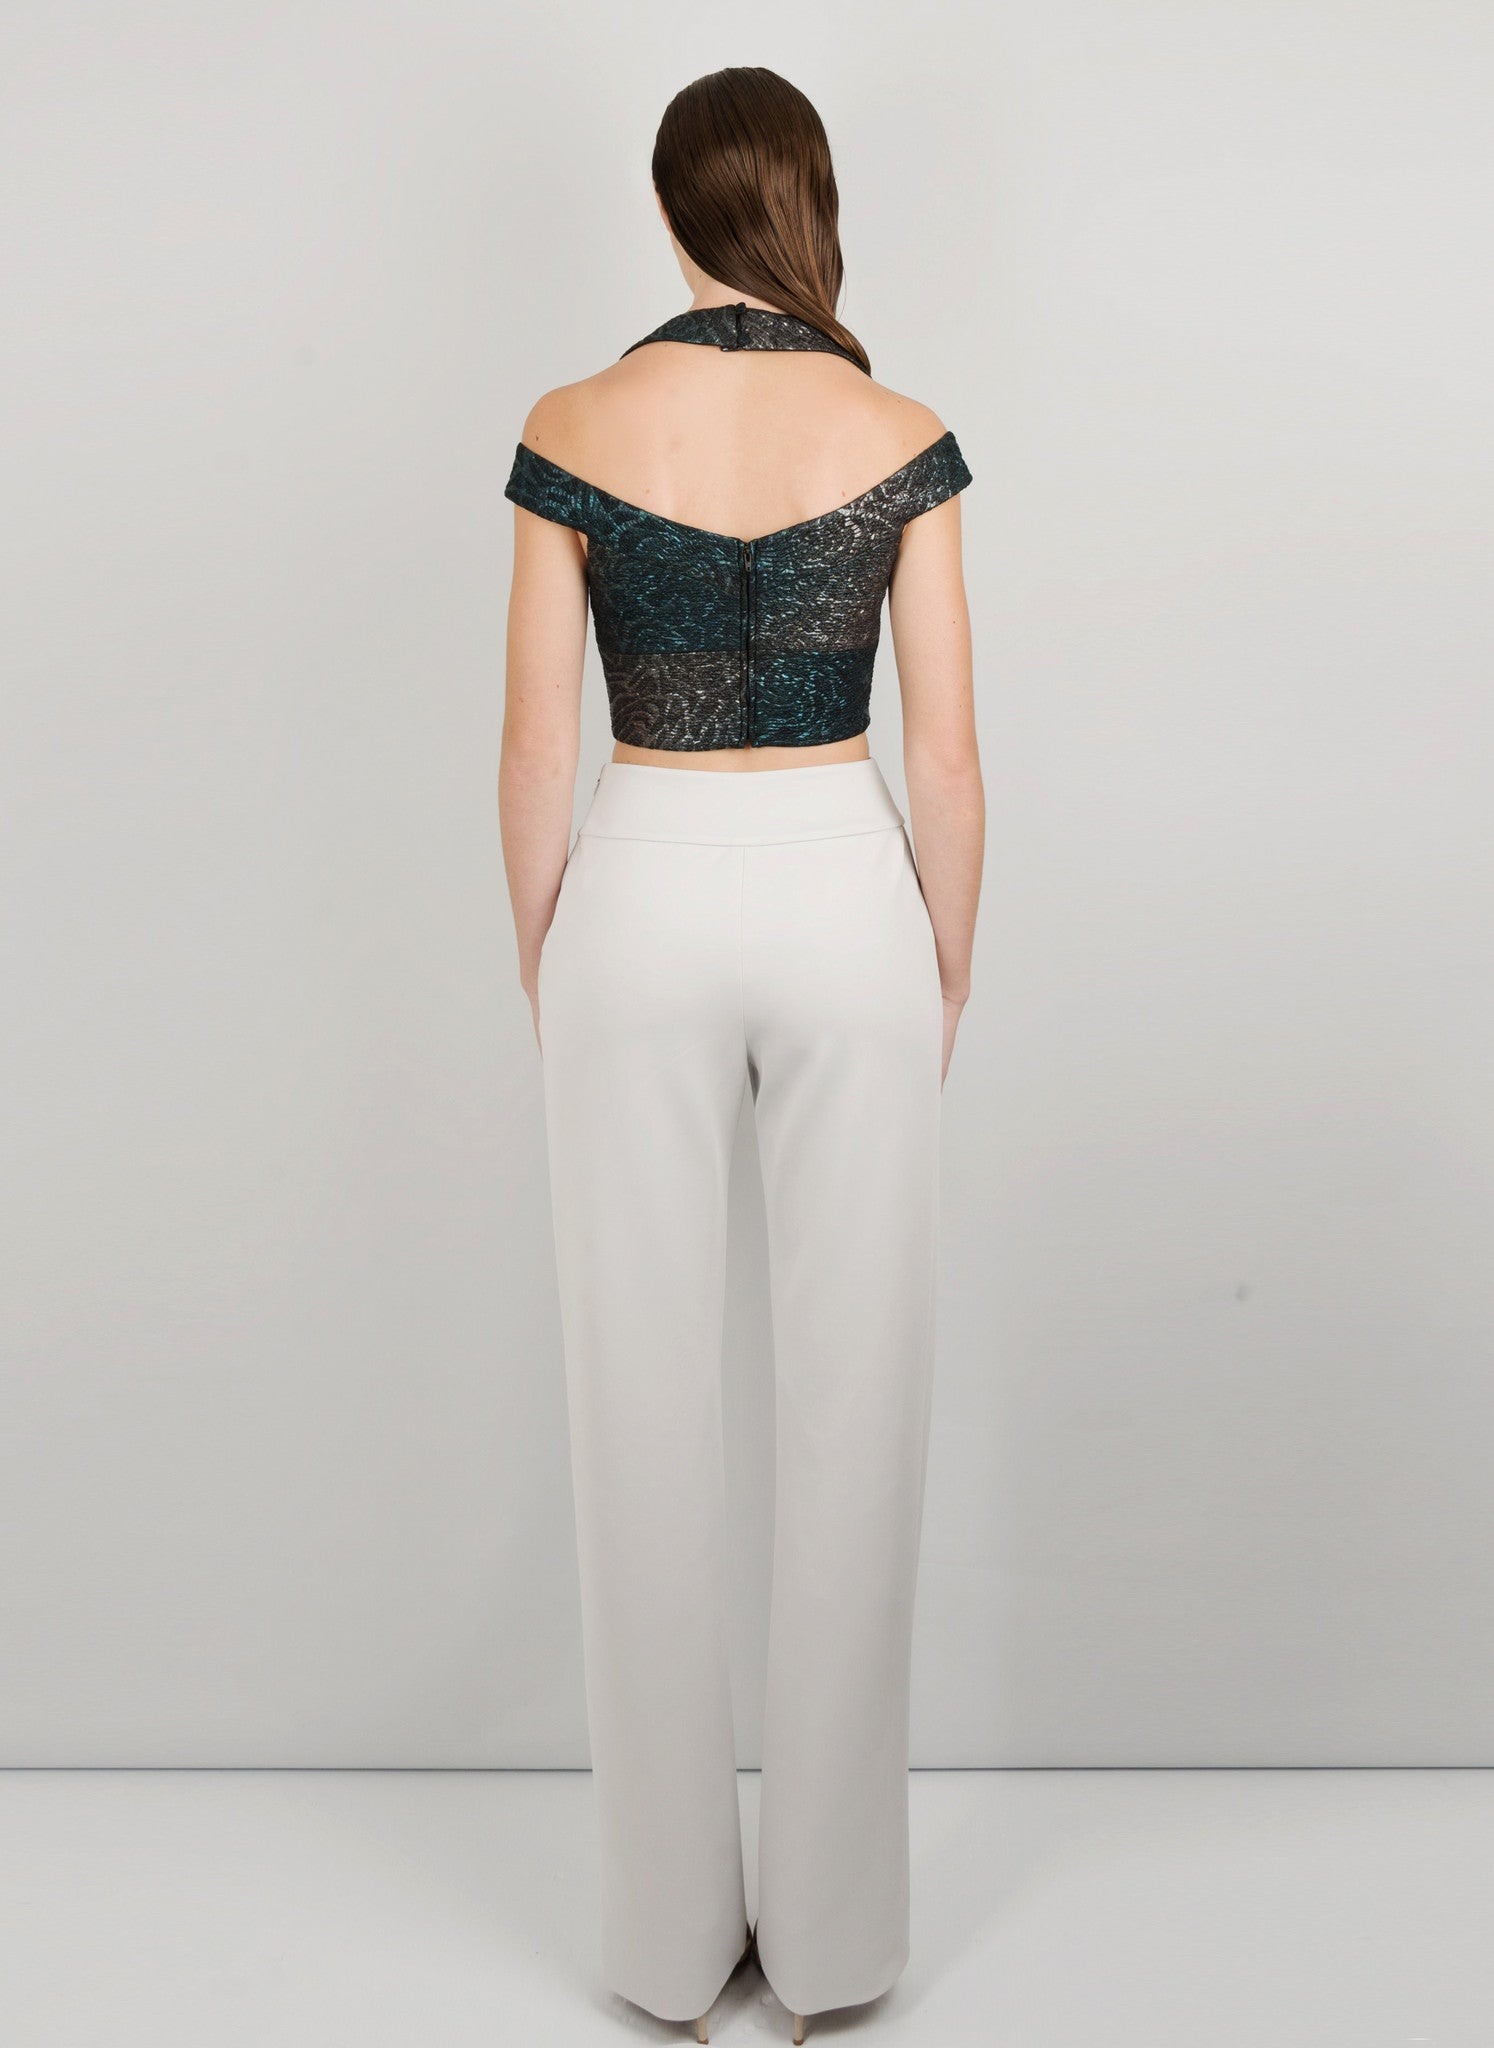 MADOLA-THE-LABEL - ALANA CROP TOP. Luxurious fabric which hugs the body, attached cups. Designed in Australia.